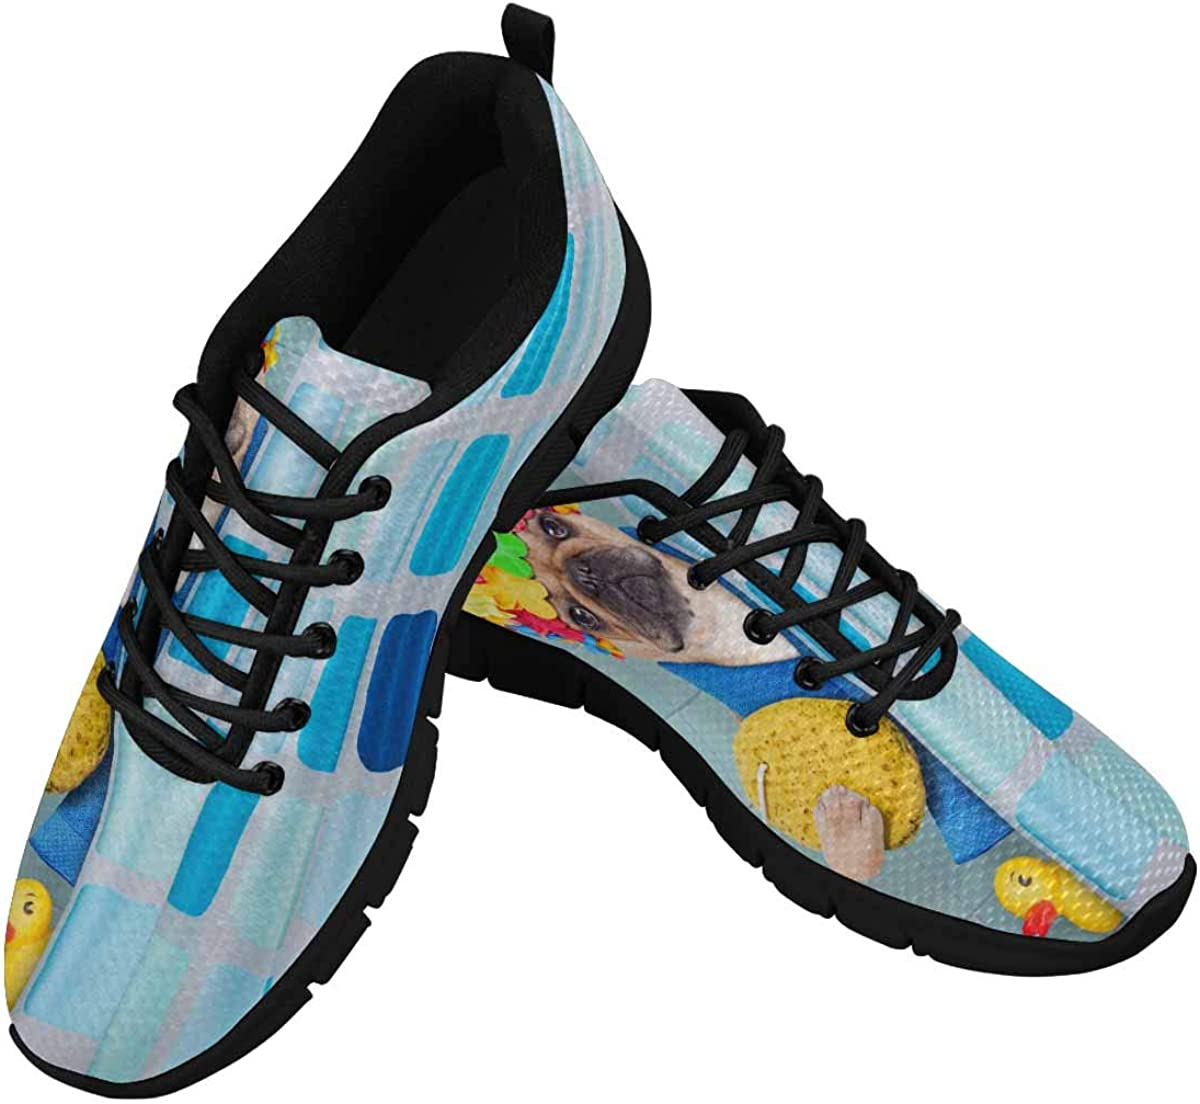 INTERESTPRINT French Bulldog Dog in a Bathtub Women's Lace Up Running Comfort Sports Sneakers